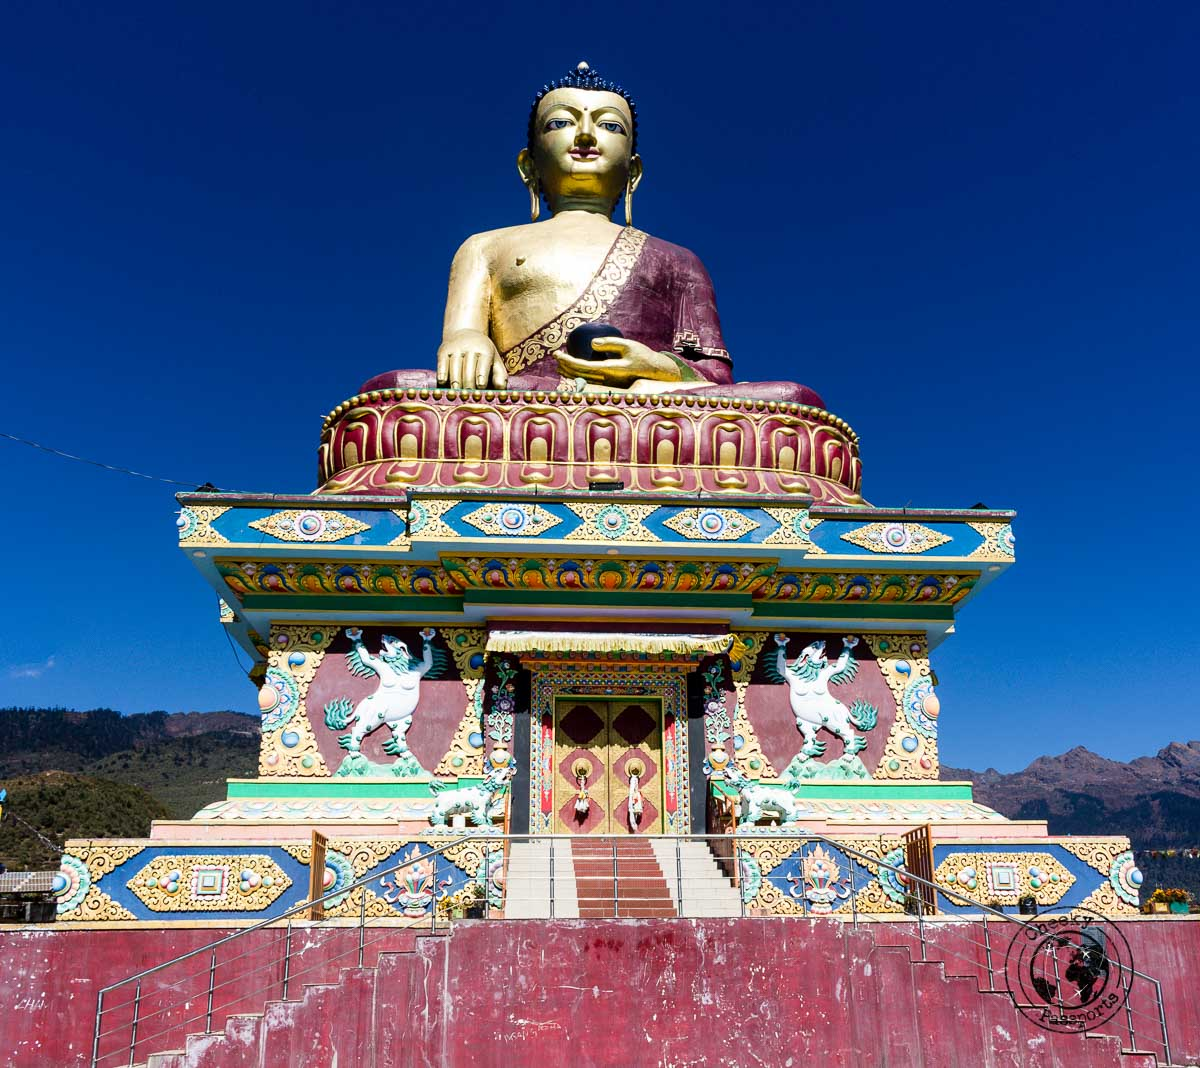 Girant Buddha statue in Tawang - Guide to Sela Pass, Tawang Monastery and other Places to Visit in Tawang